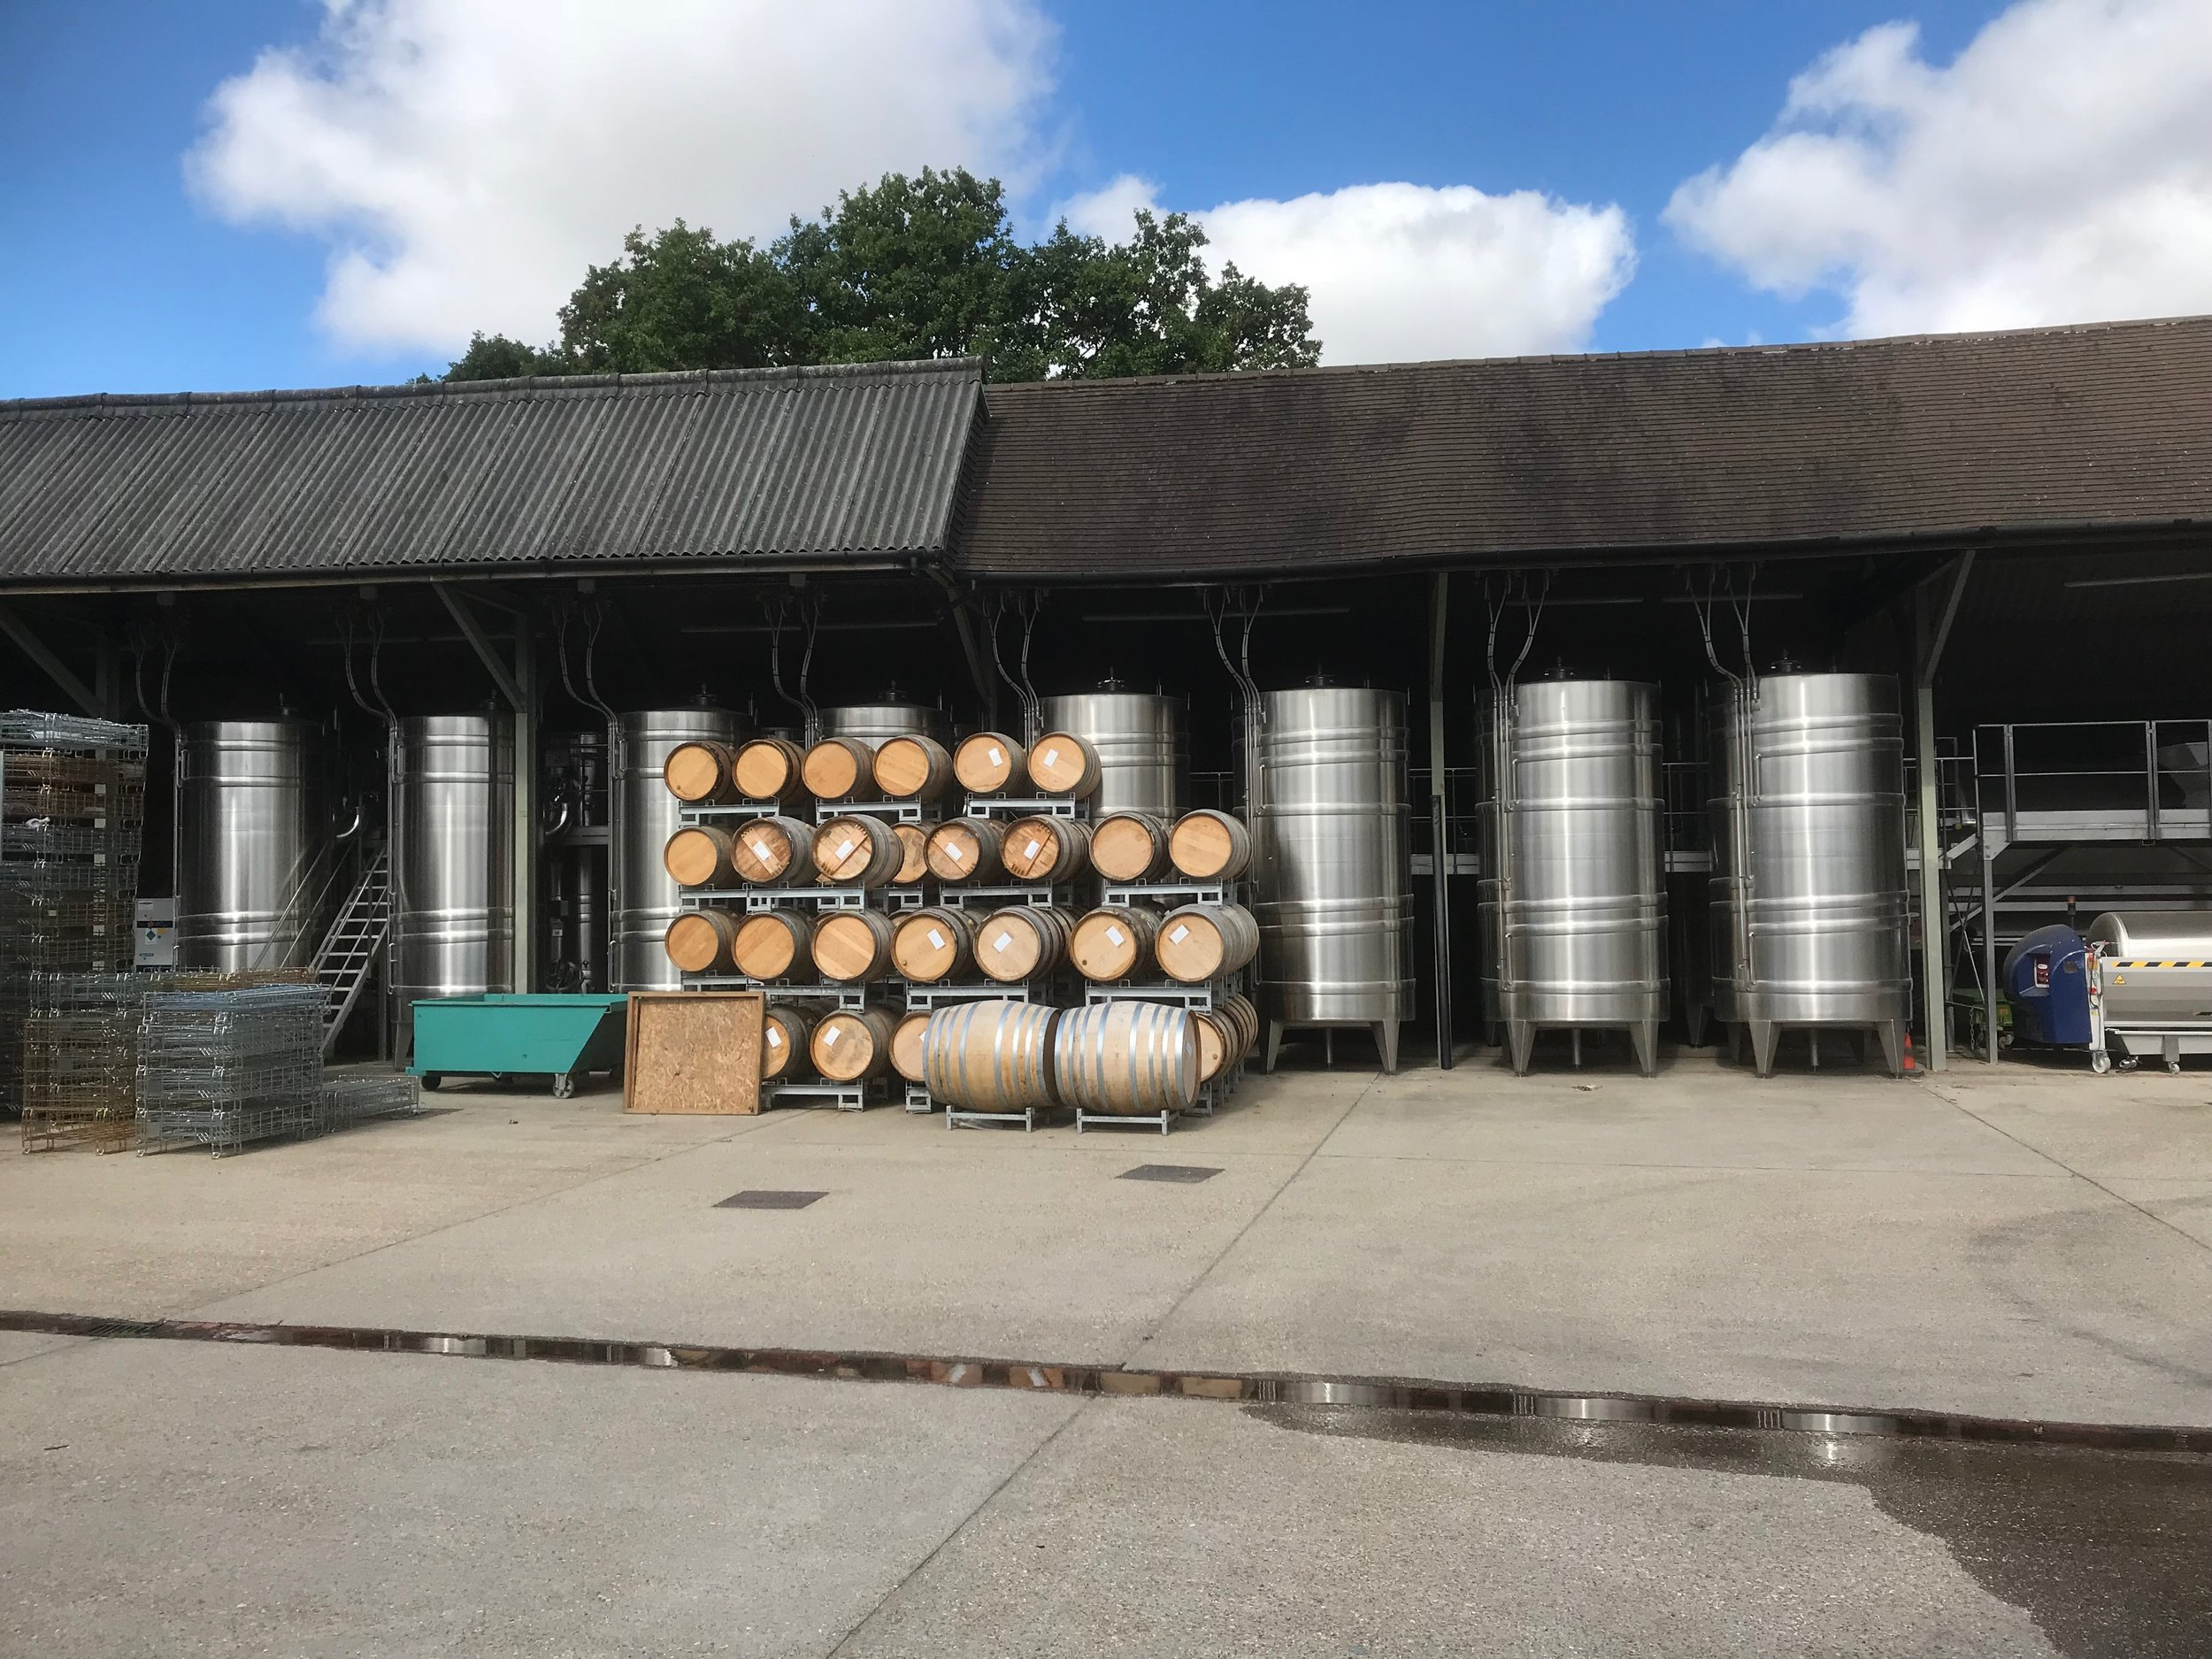 winery yard.jpg